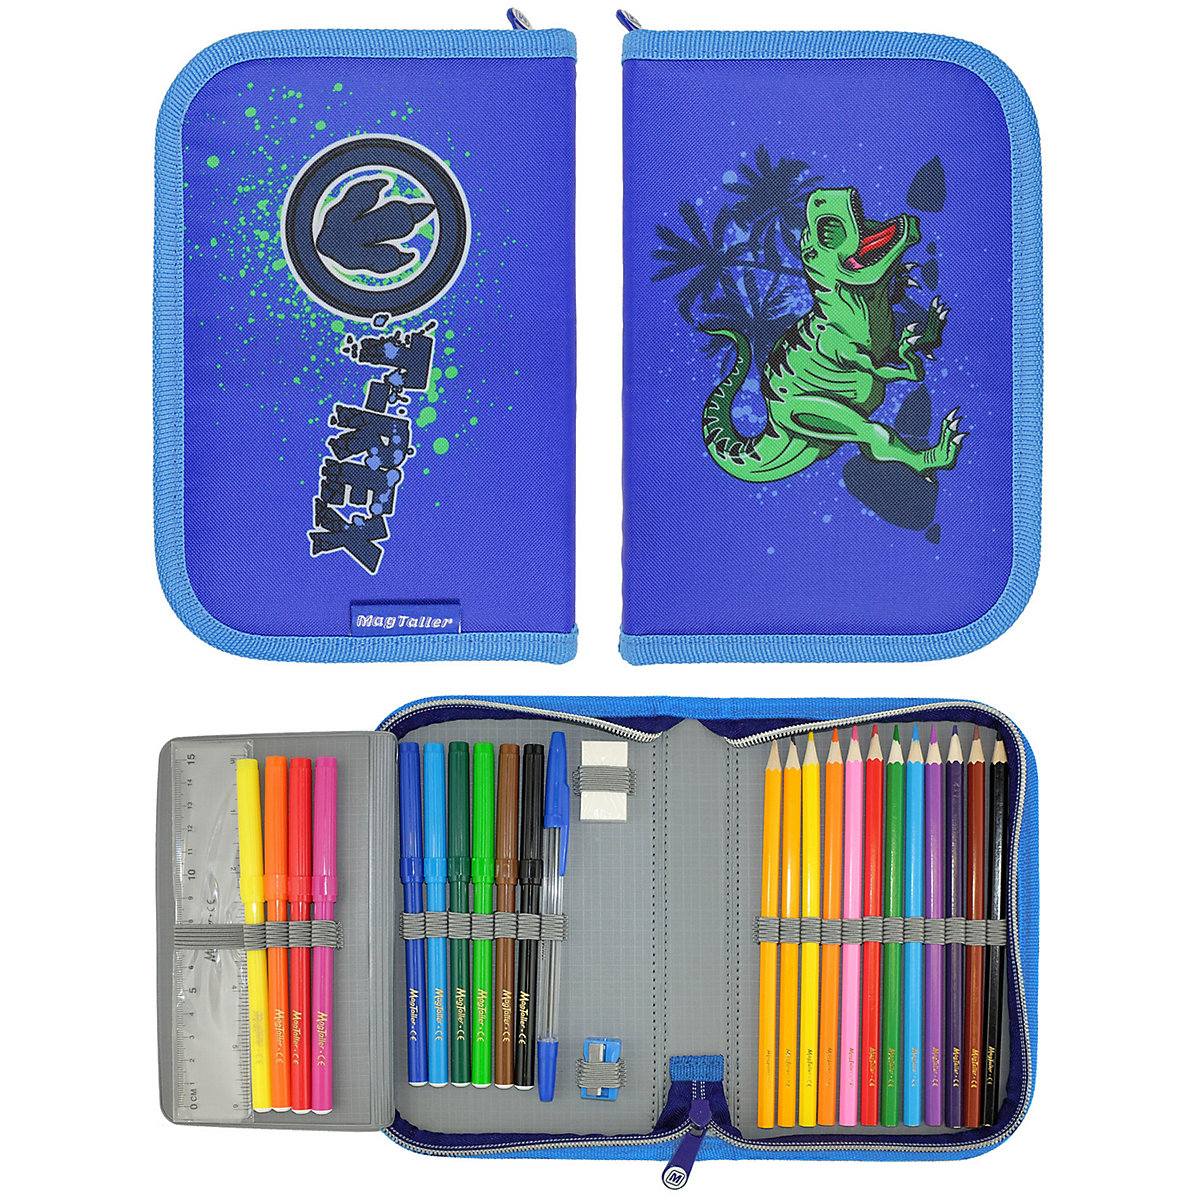 Фото - Pencil Cases MAGTALLER 11154864 school supplies stationery pencil cases for girls and boys drawing cases